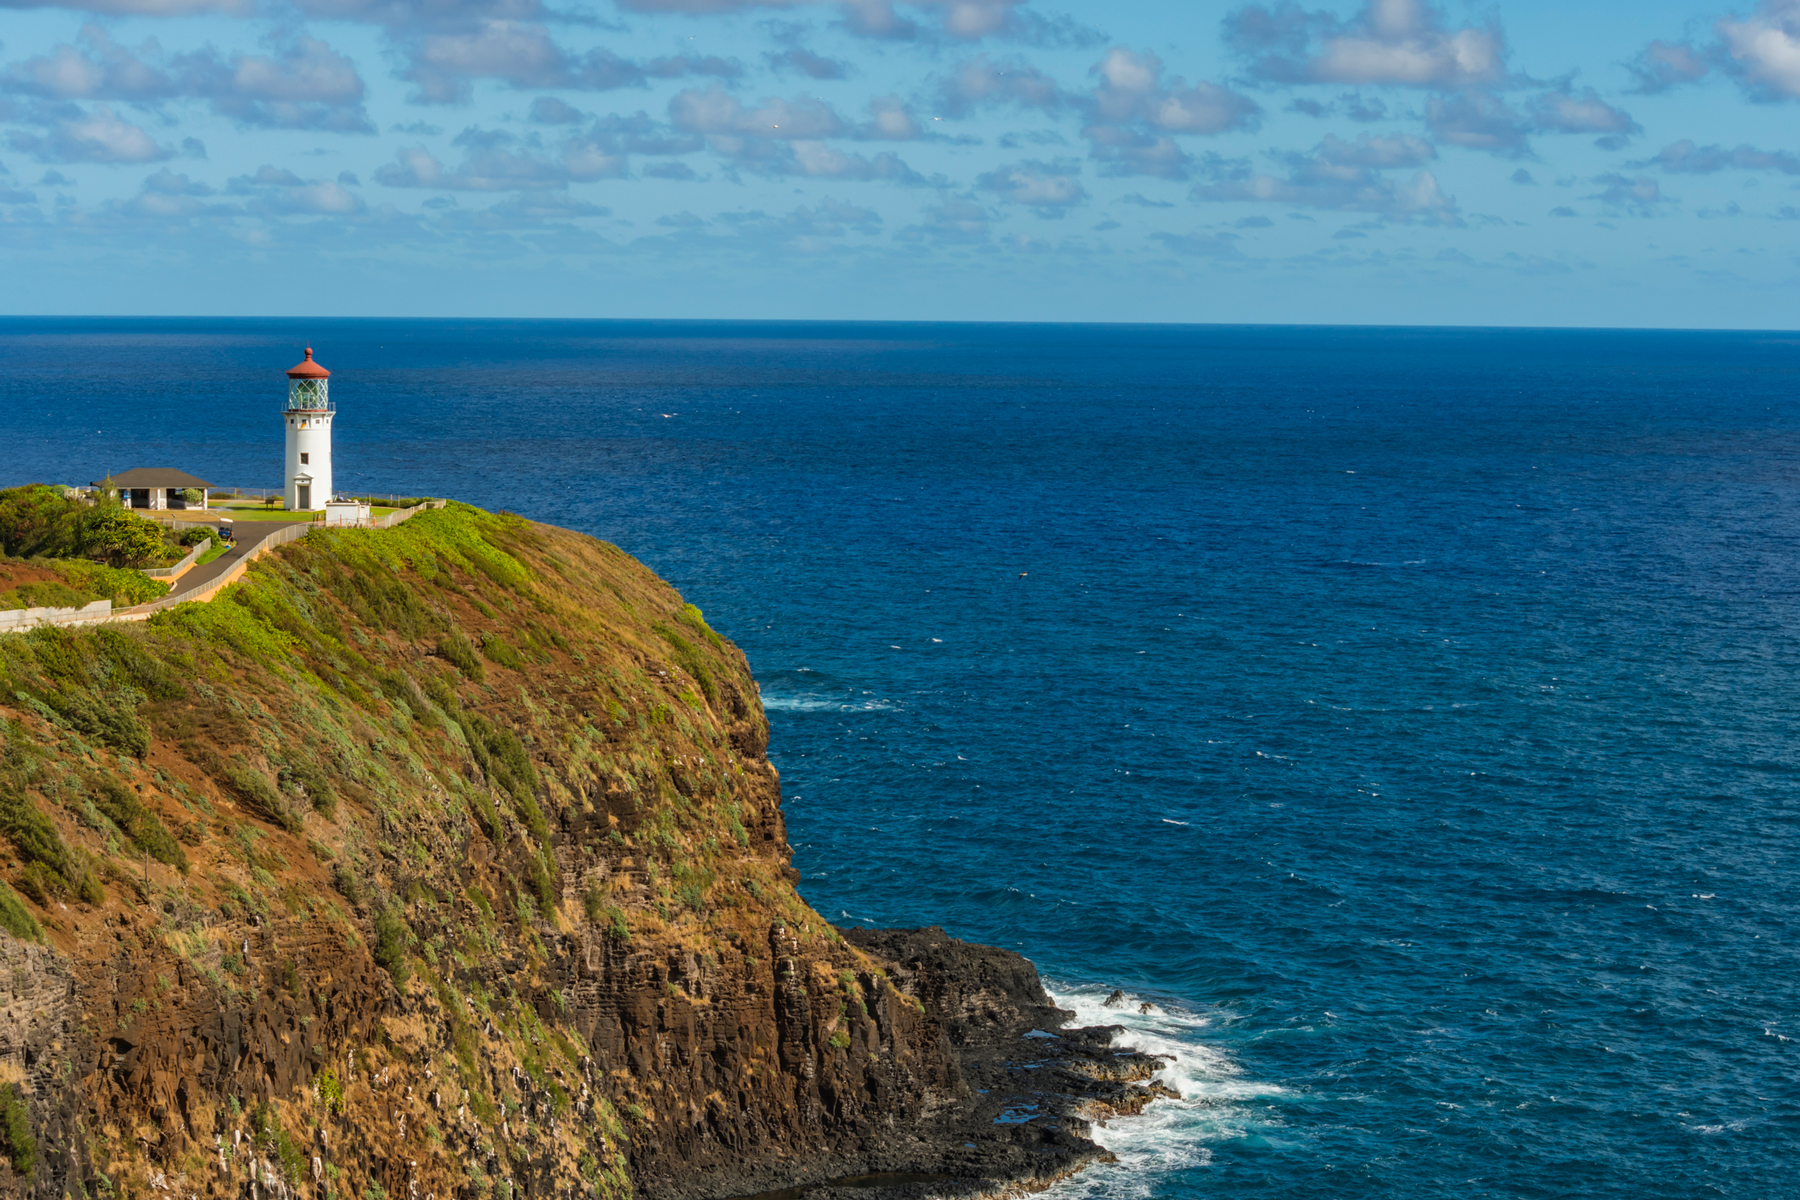 A view of Kīlauea Lighthouse on the north shore of Kauai, Hawaii.